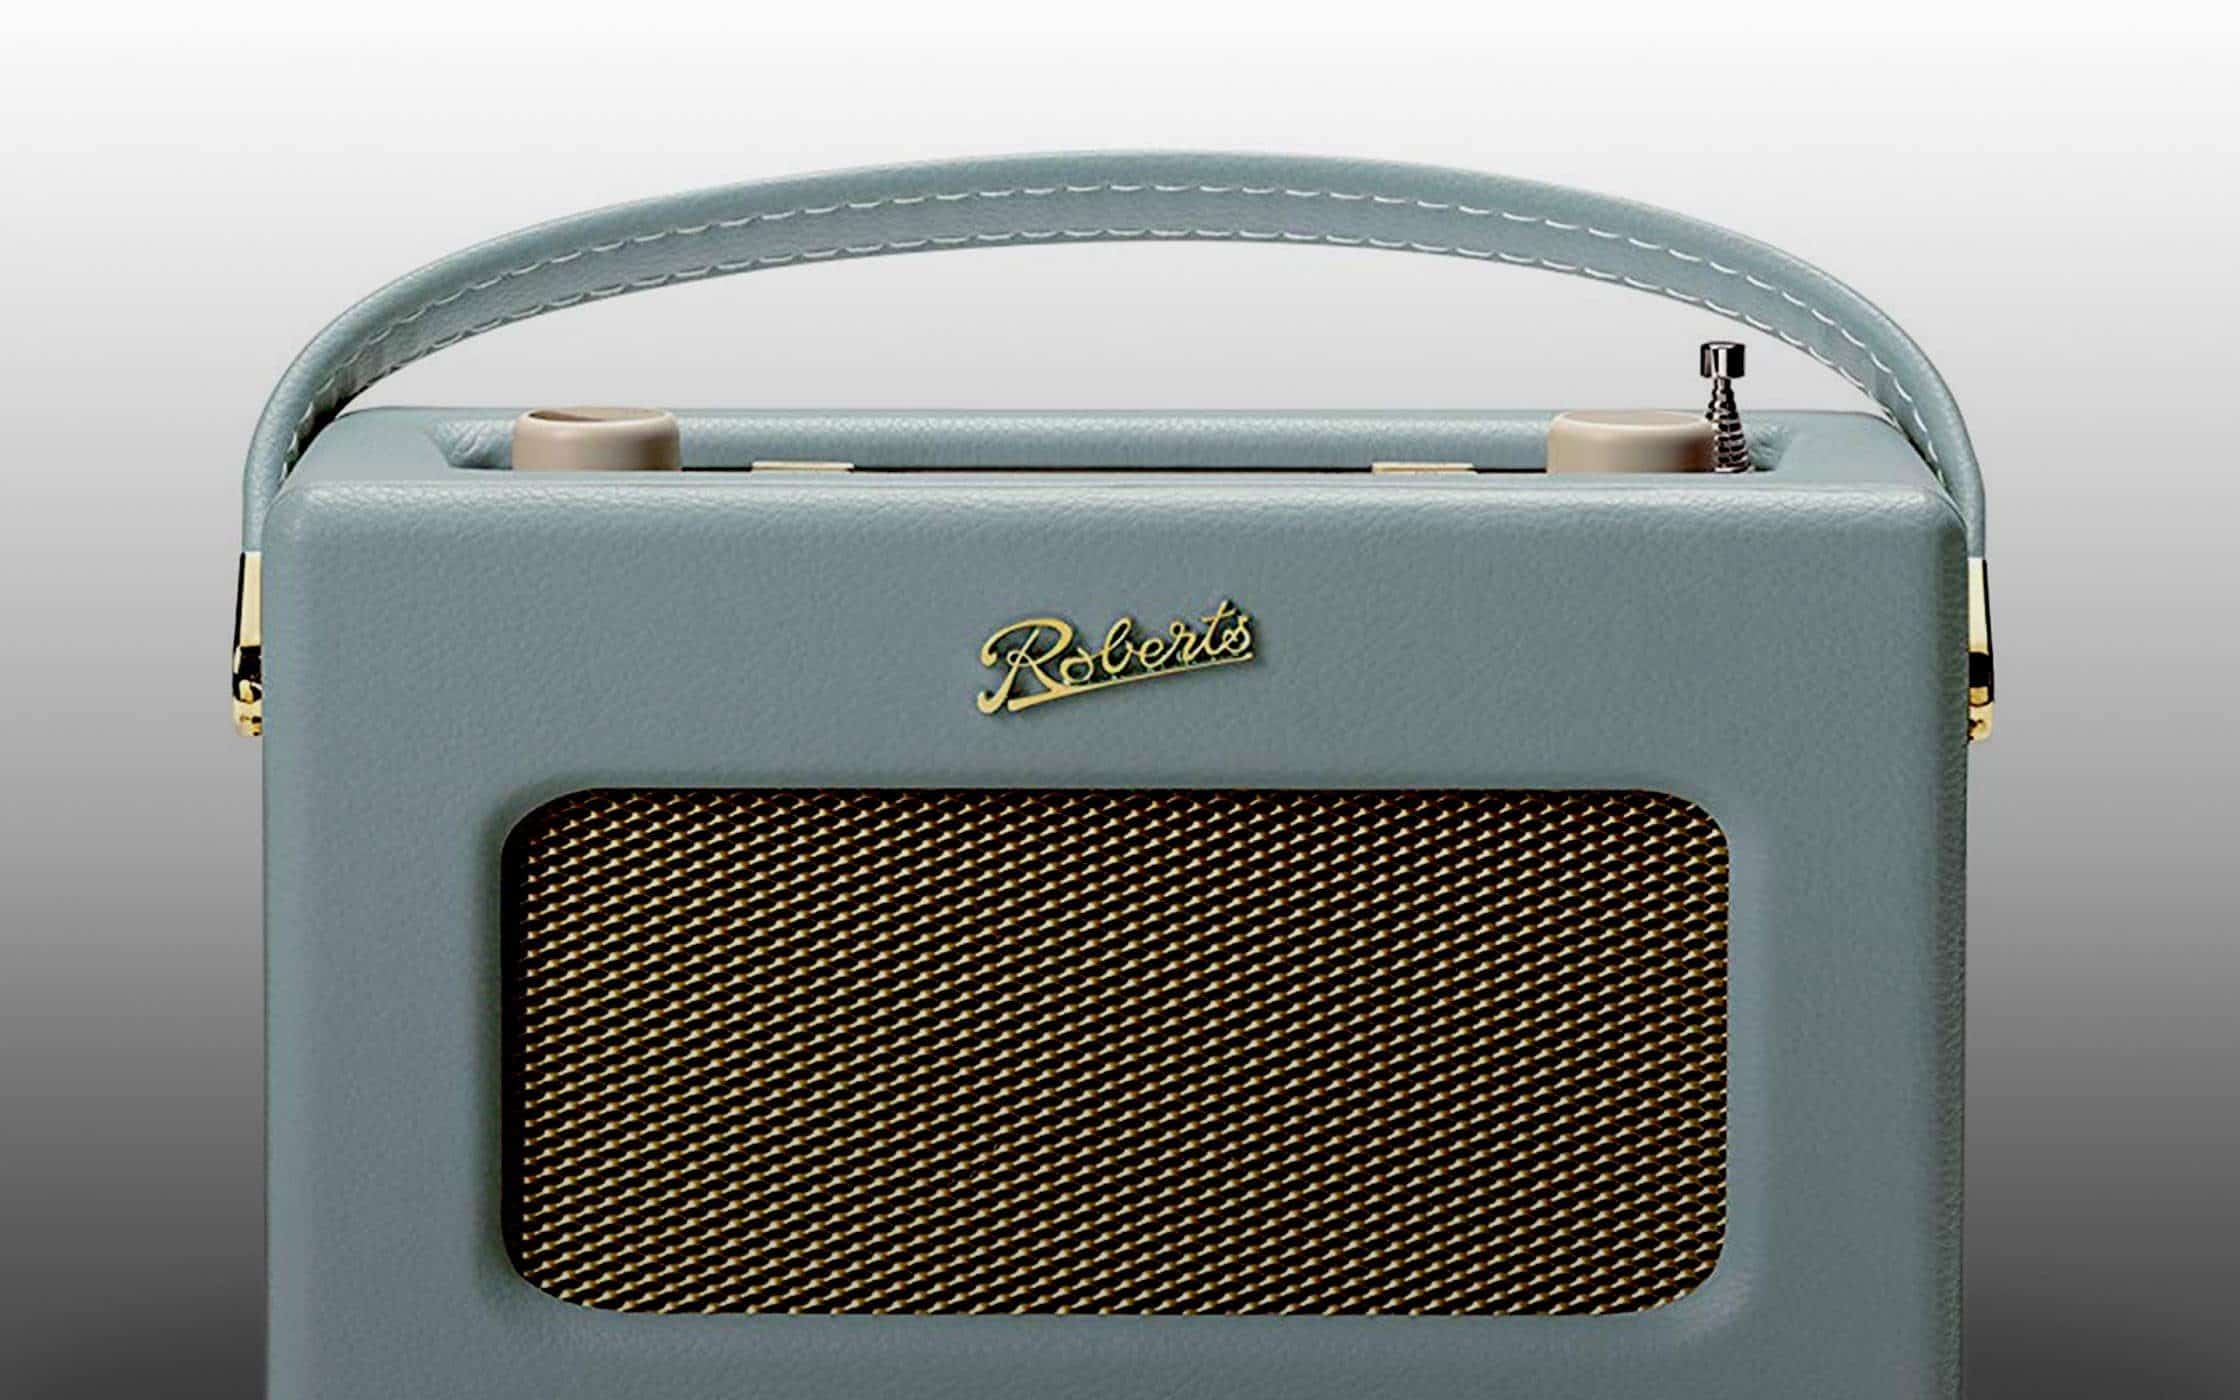 Roberts Radio Revival RD70 Review (July 2019) | Radio Fidelity